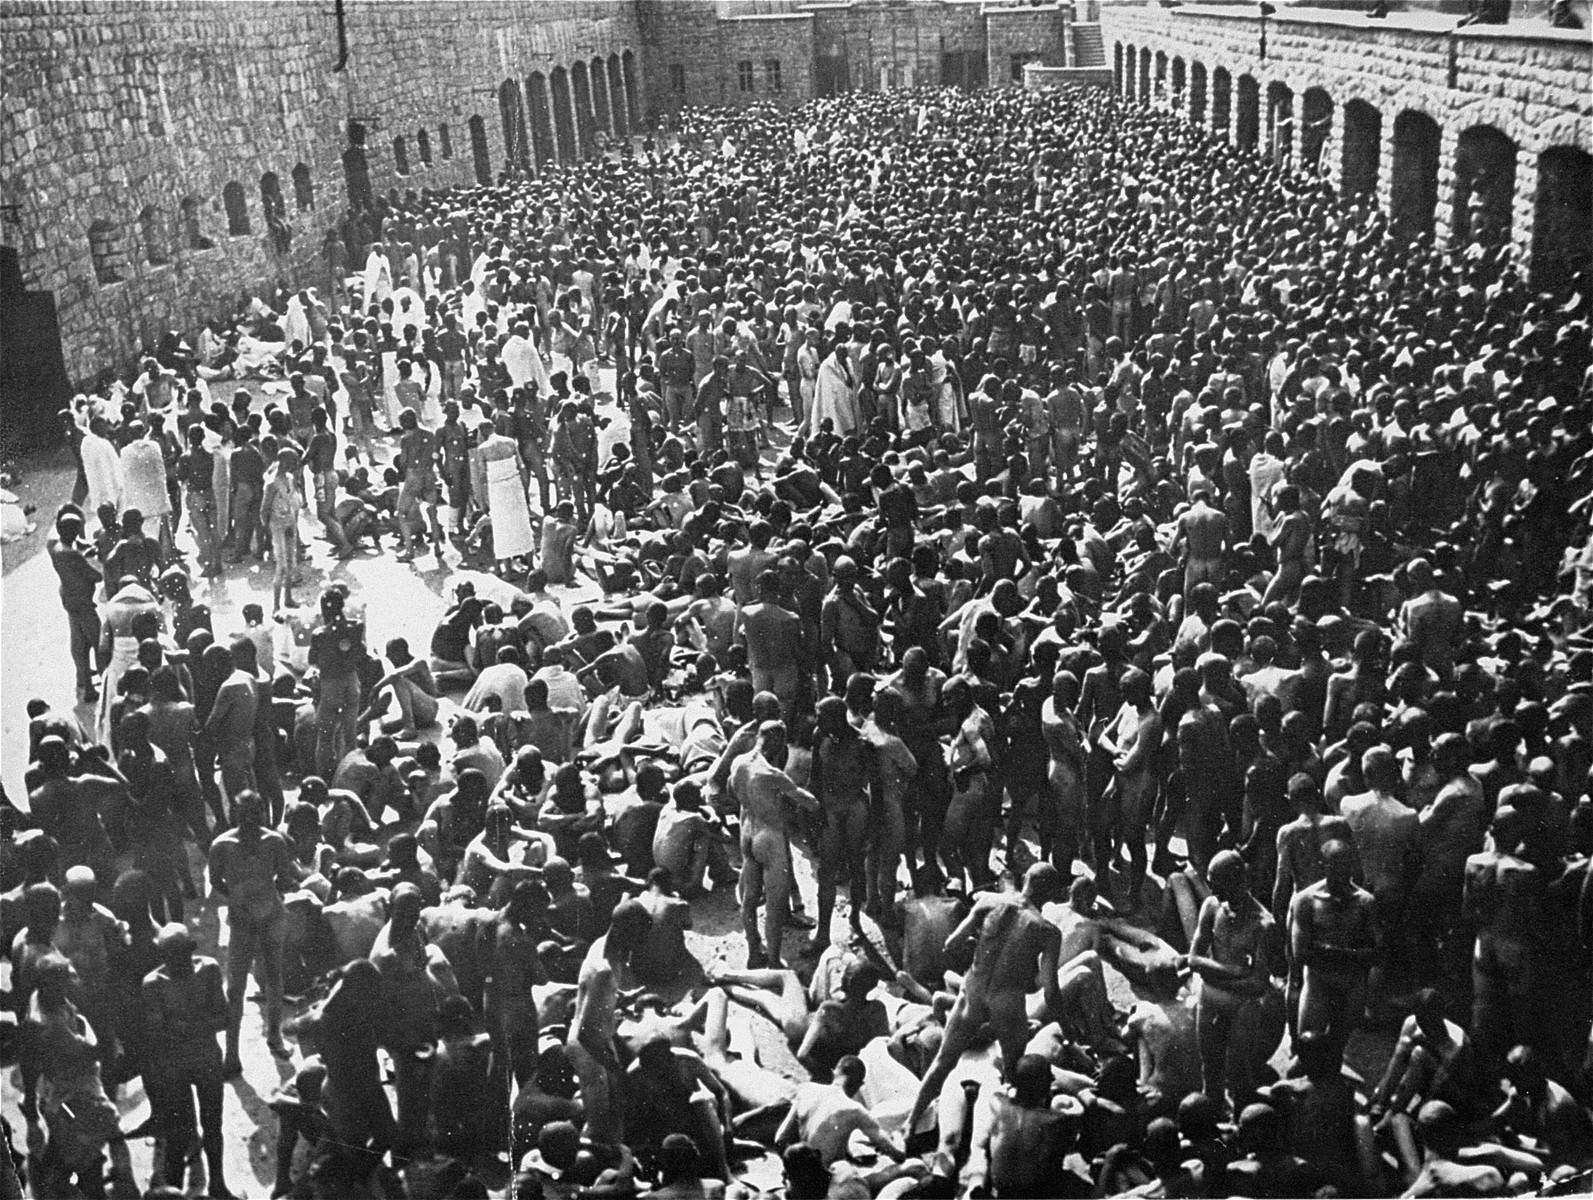 6,000 naked prisoners are assembled in the courtyard of the Mauthausen concentration camp where they await disinfection.